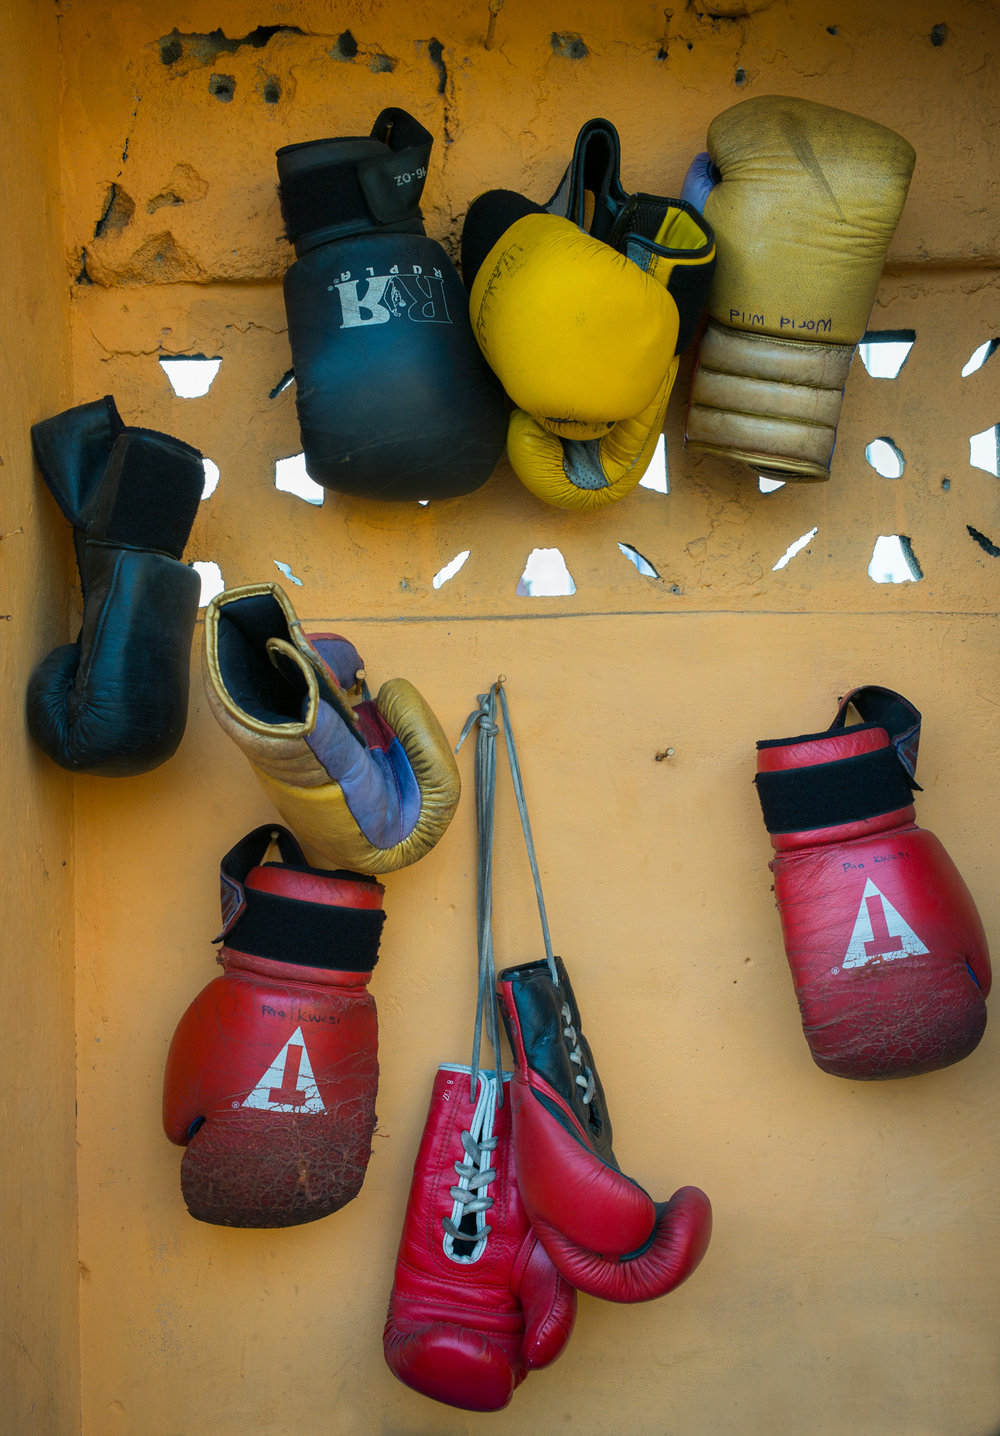 Boxing Gloves hanging at Discipline Boxing Academy, James Town